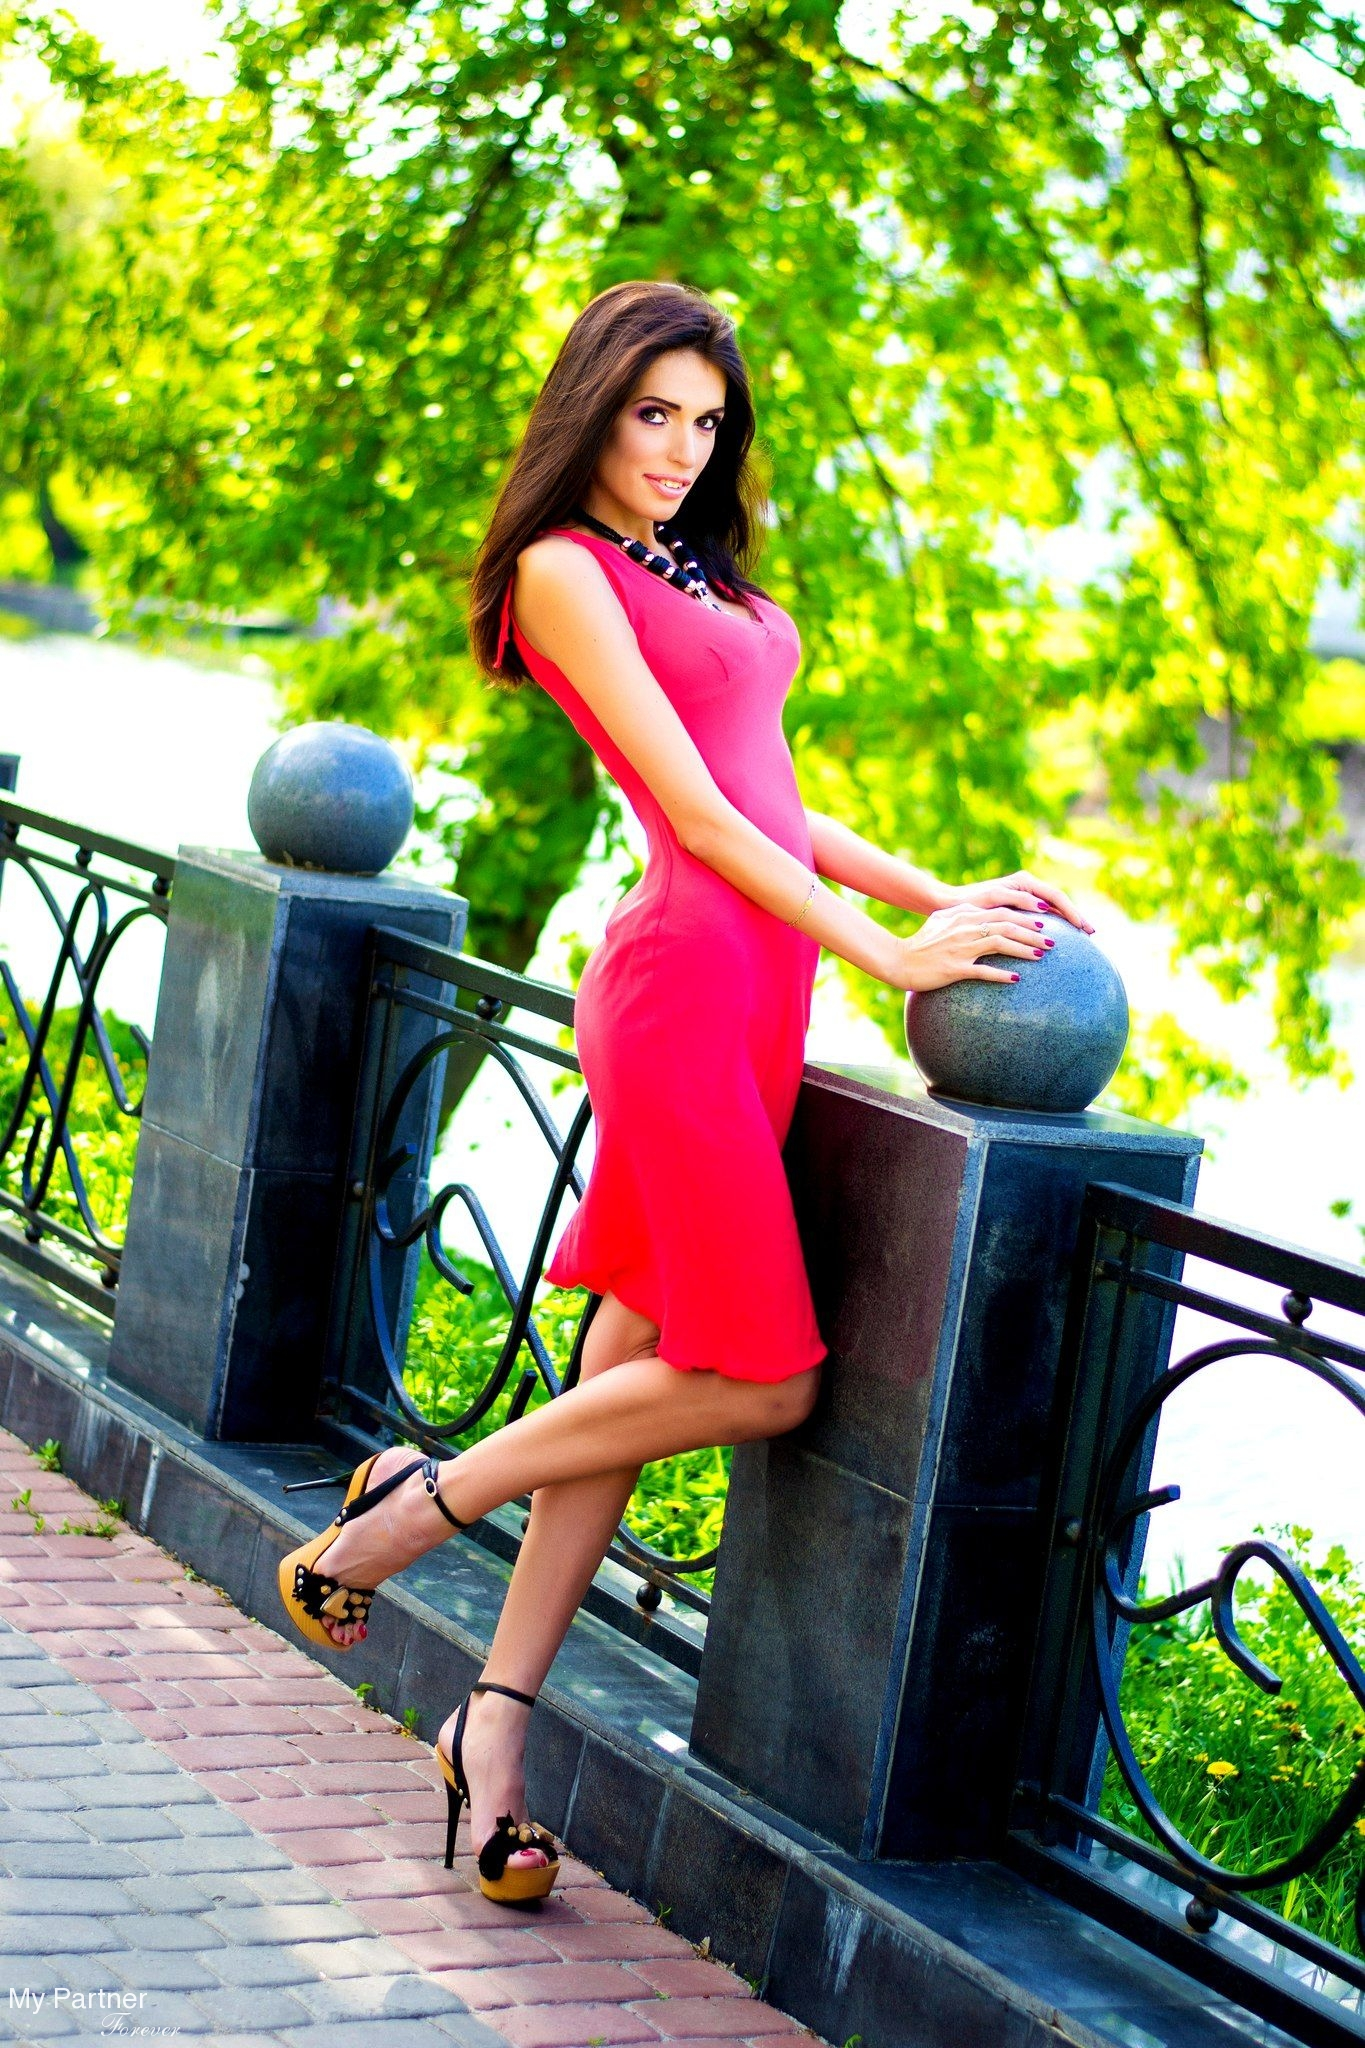 100% free online dating in regina Loveawakecom is a 100% free regina (saskatchewan) dating site where you can make friends or find true love online join our community and meet thousands of lonely hearts from various parts of regina.